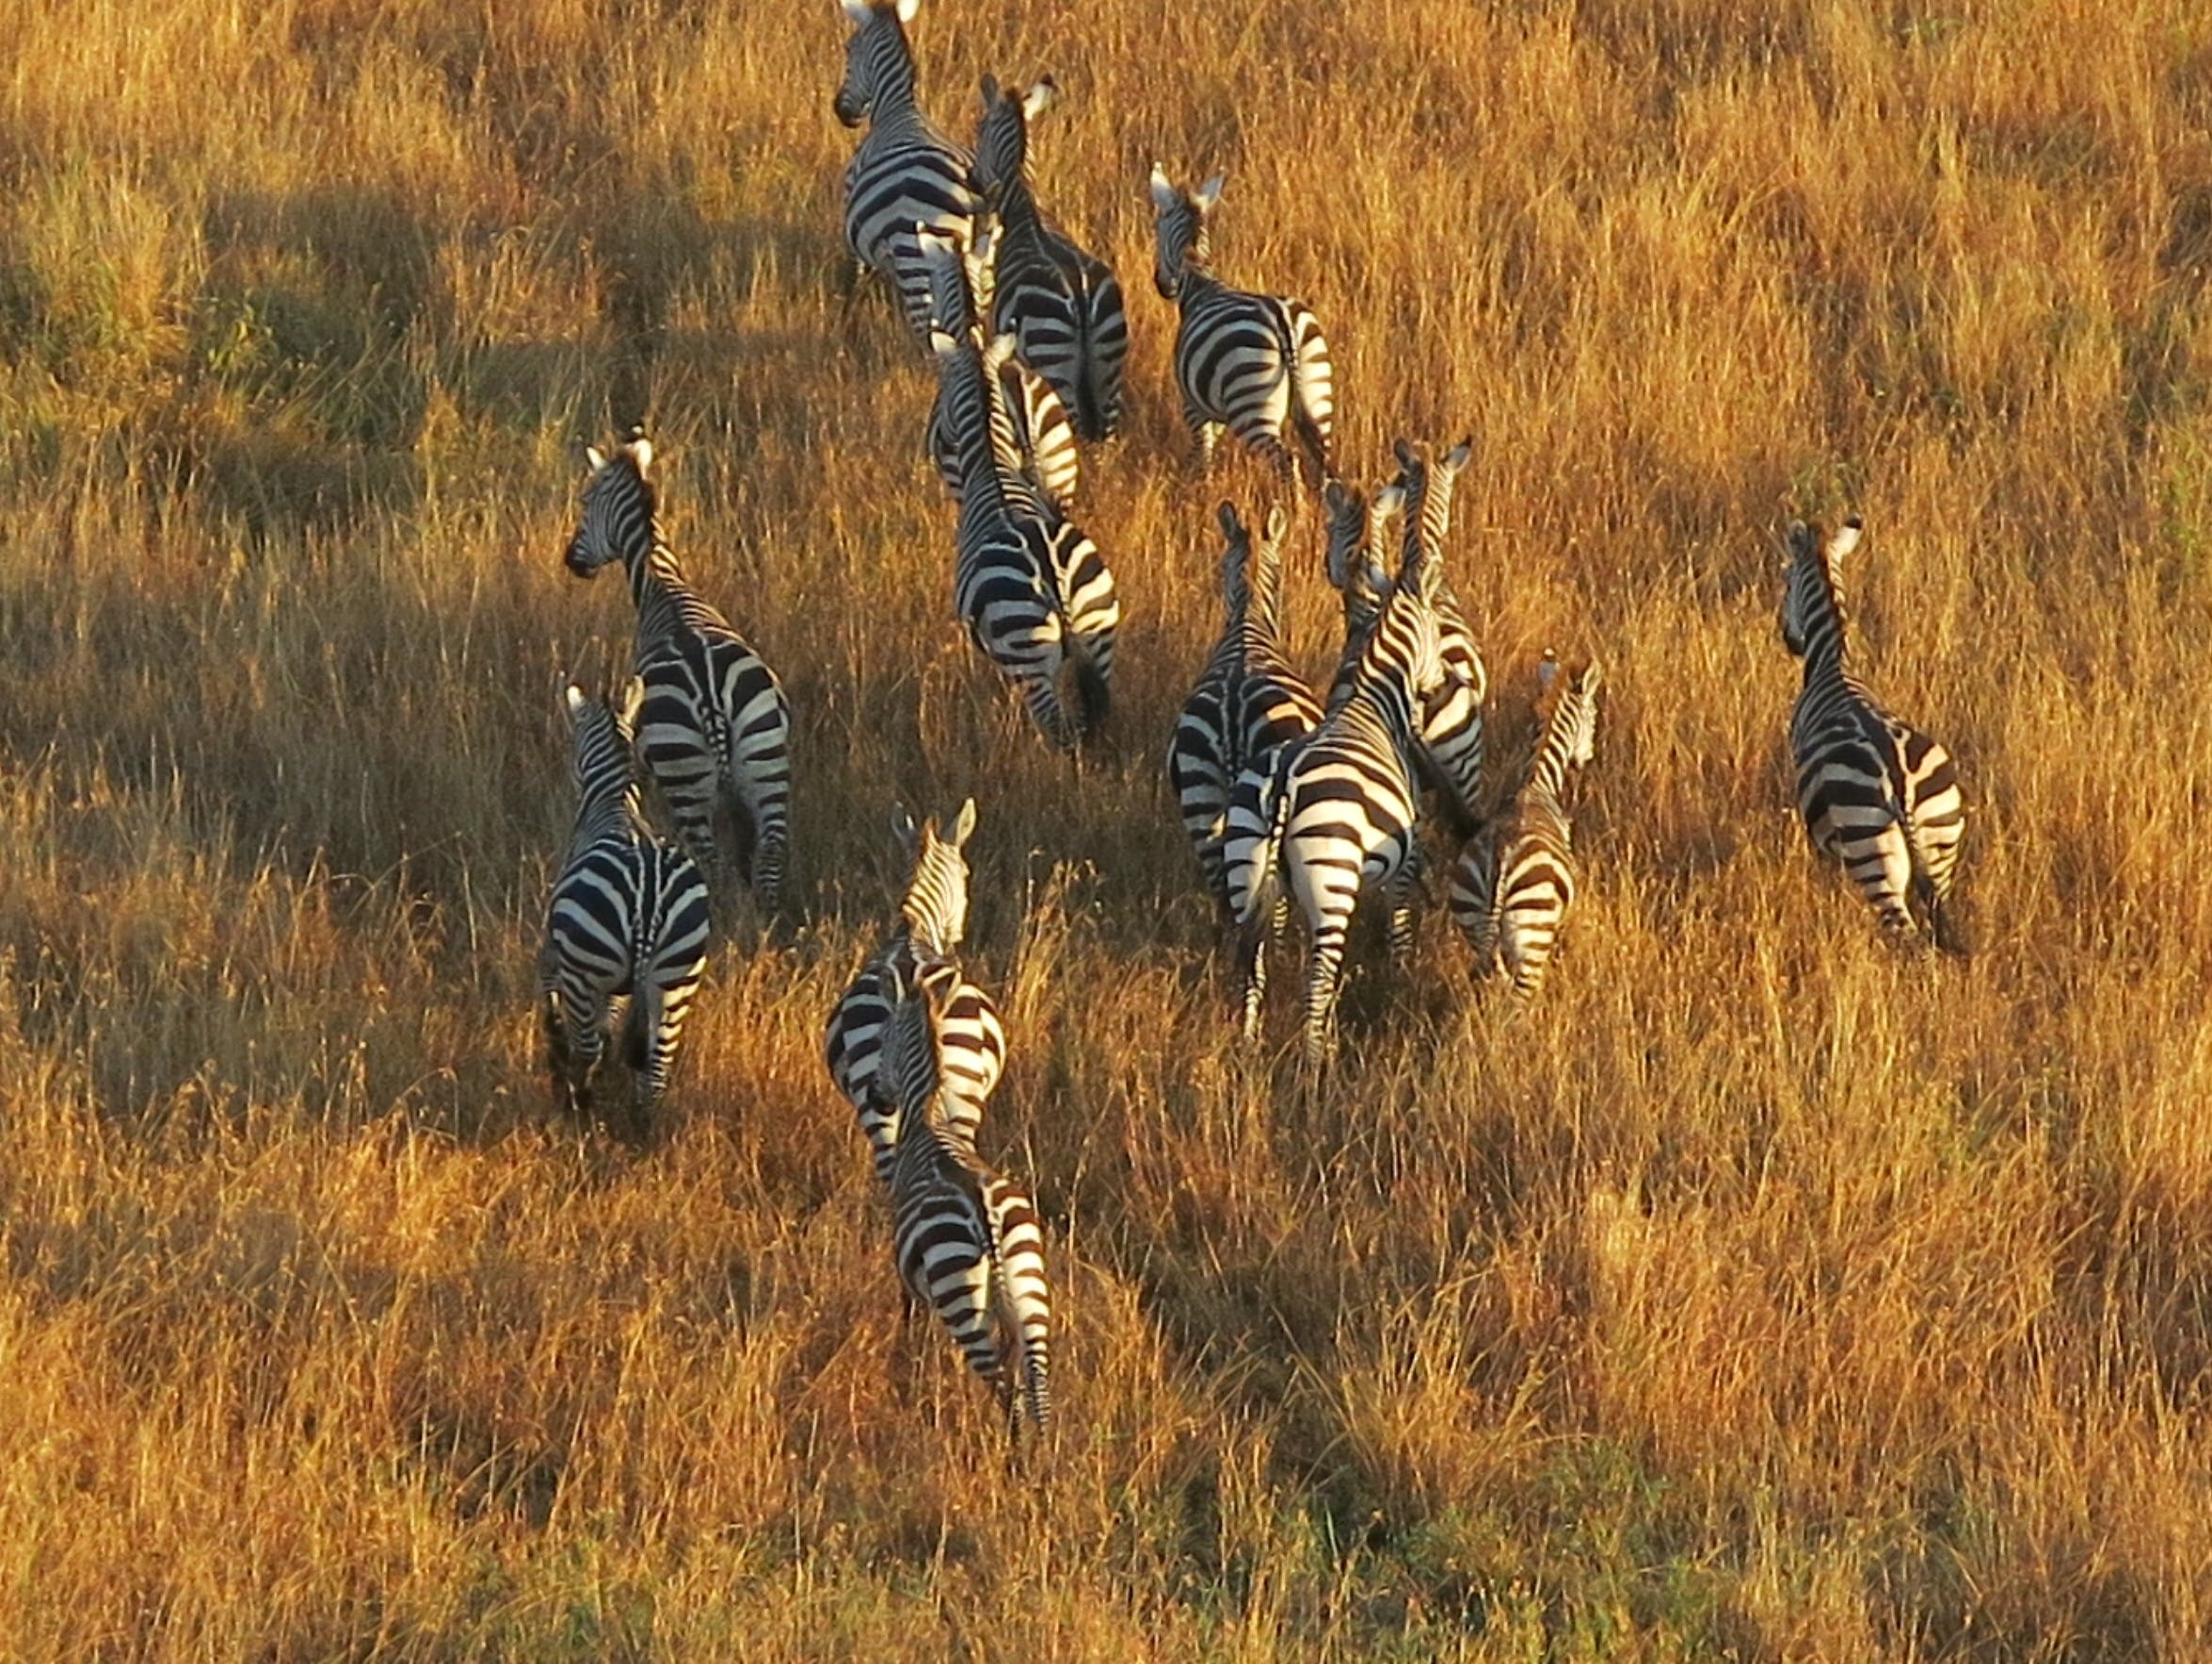 Free stock photo of hot air balloon, serengeti, zebras